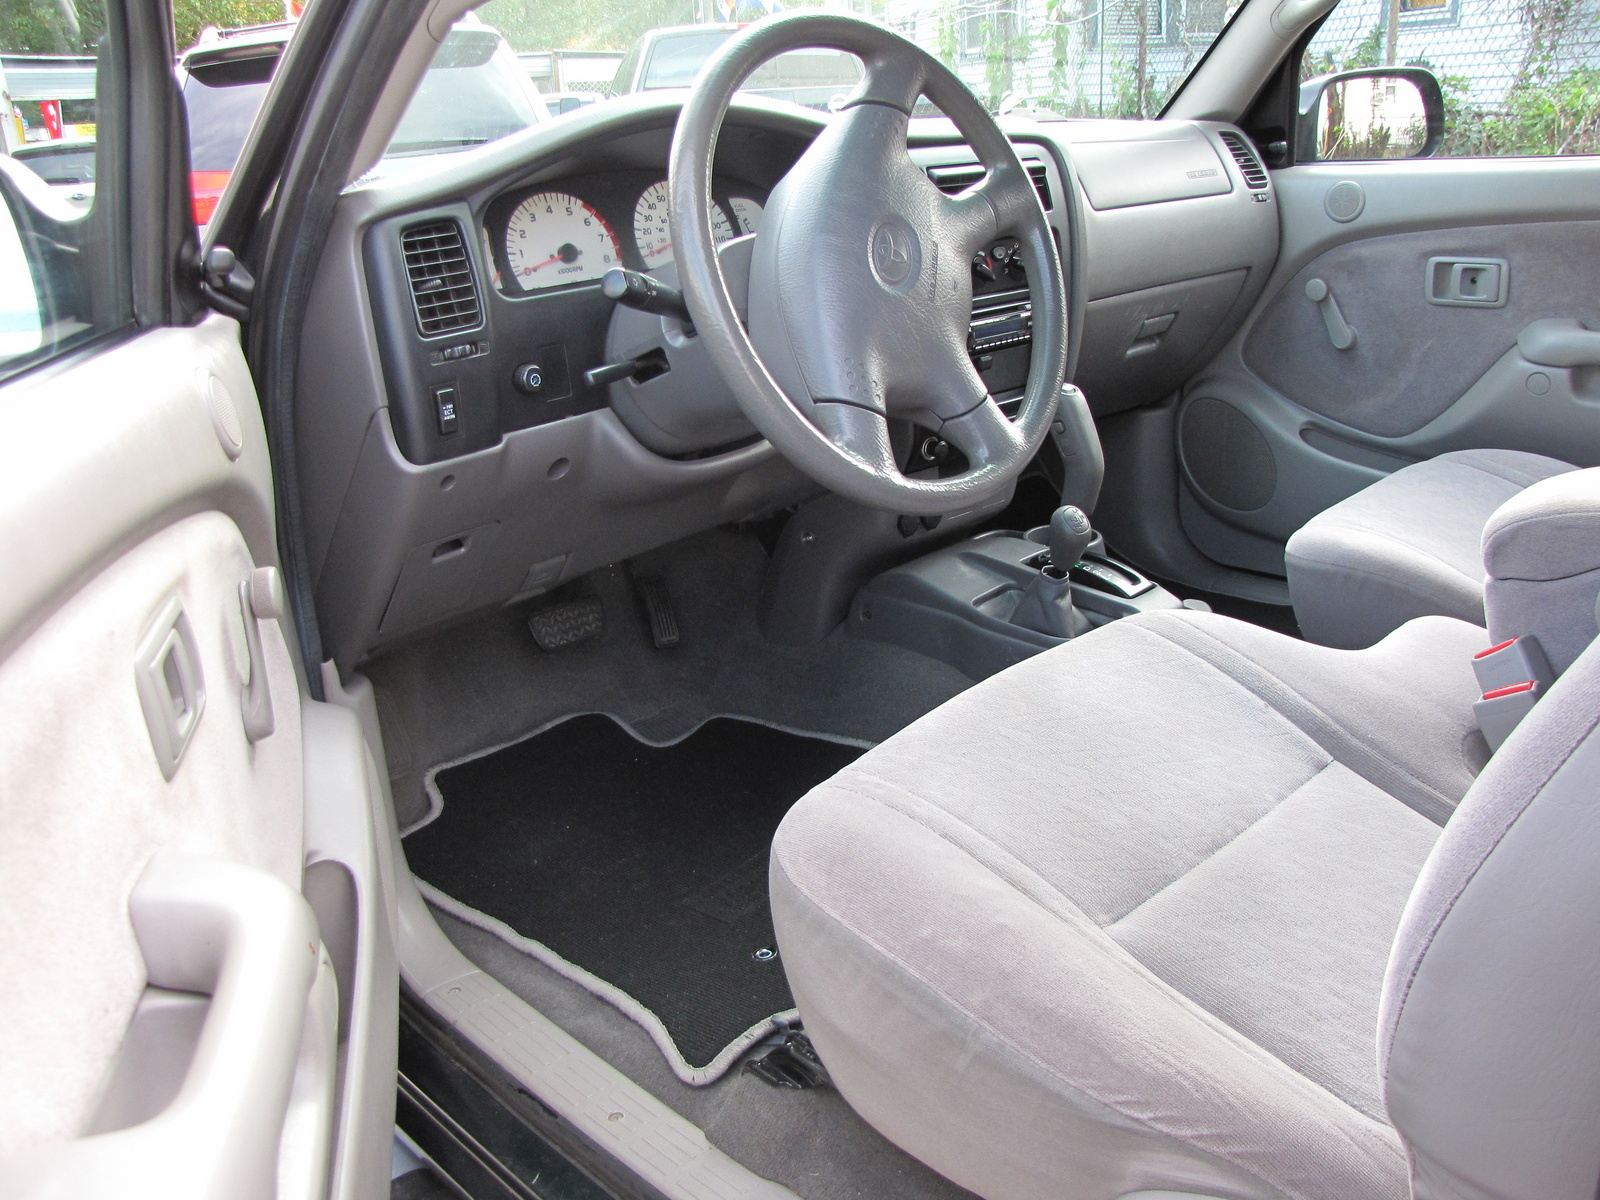 Picture of 2001 toyota tacoma 2 dr v6 4wd extended cab sb - 2001 toyota tacoma interior parts ...